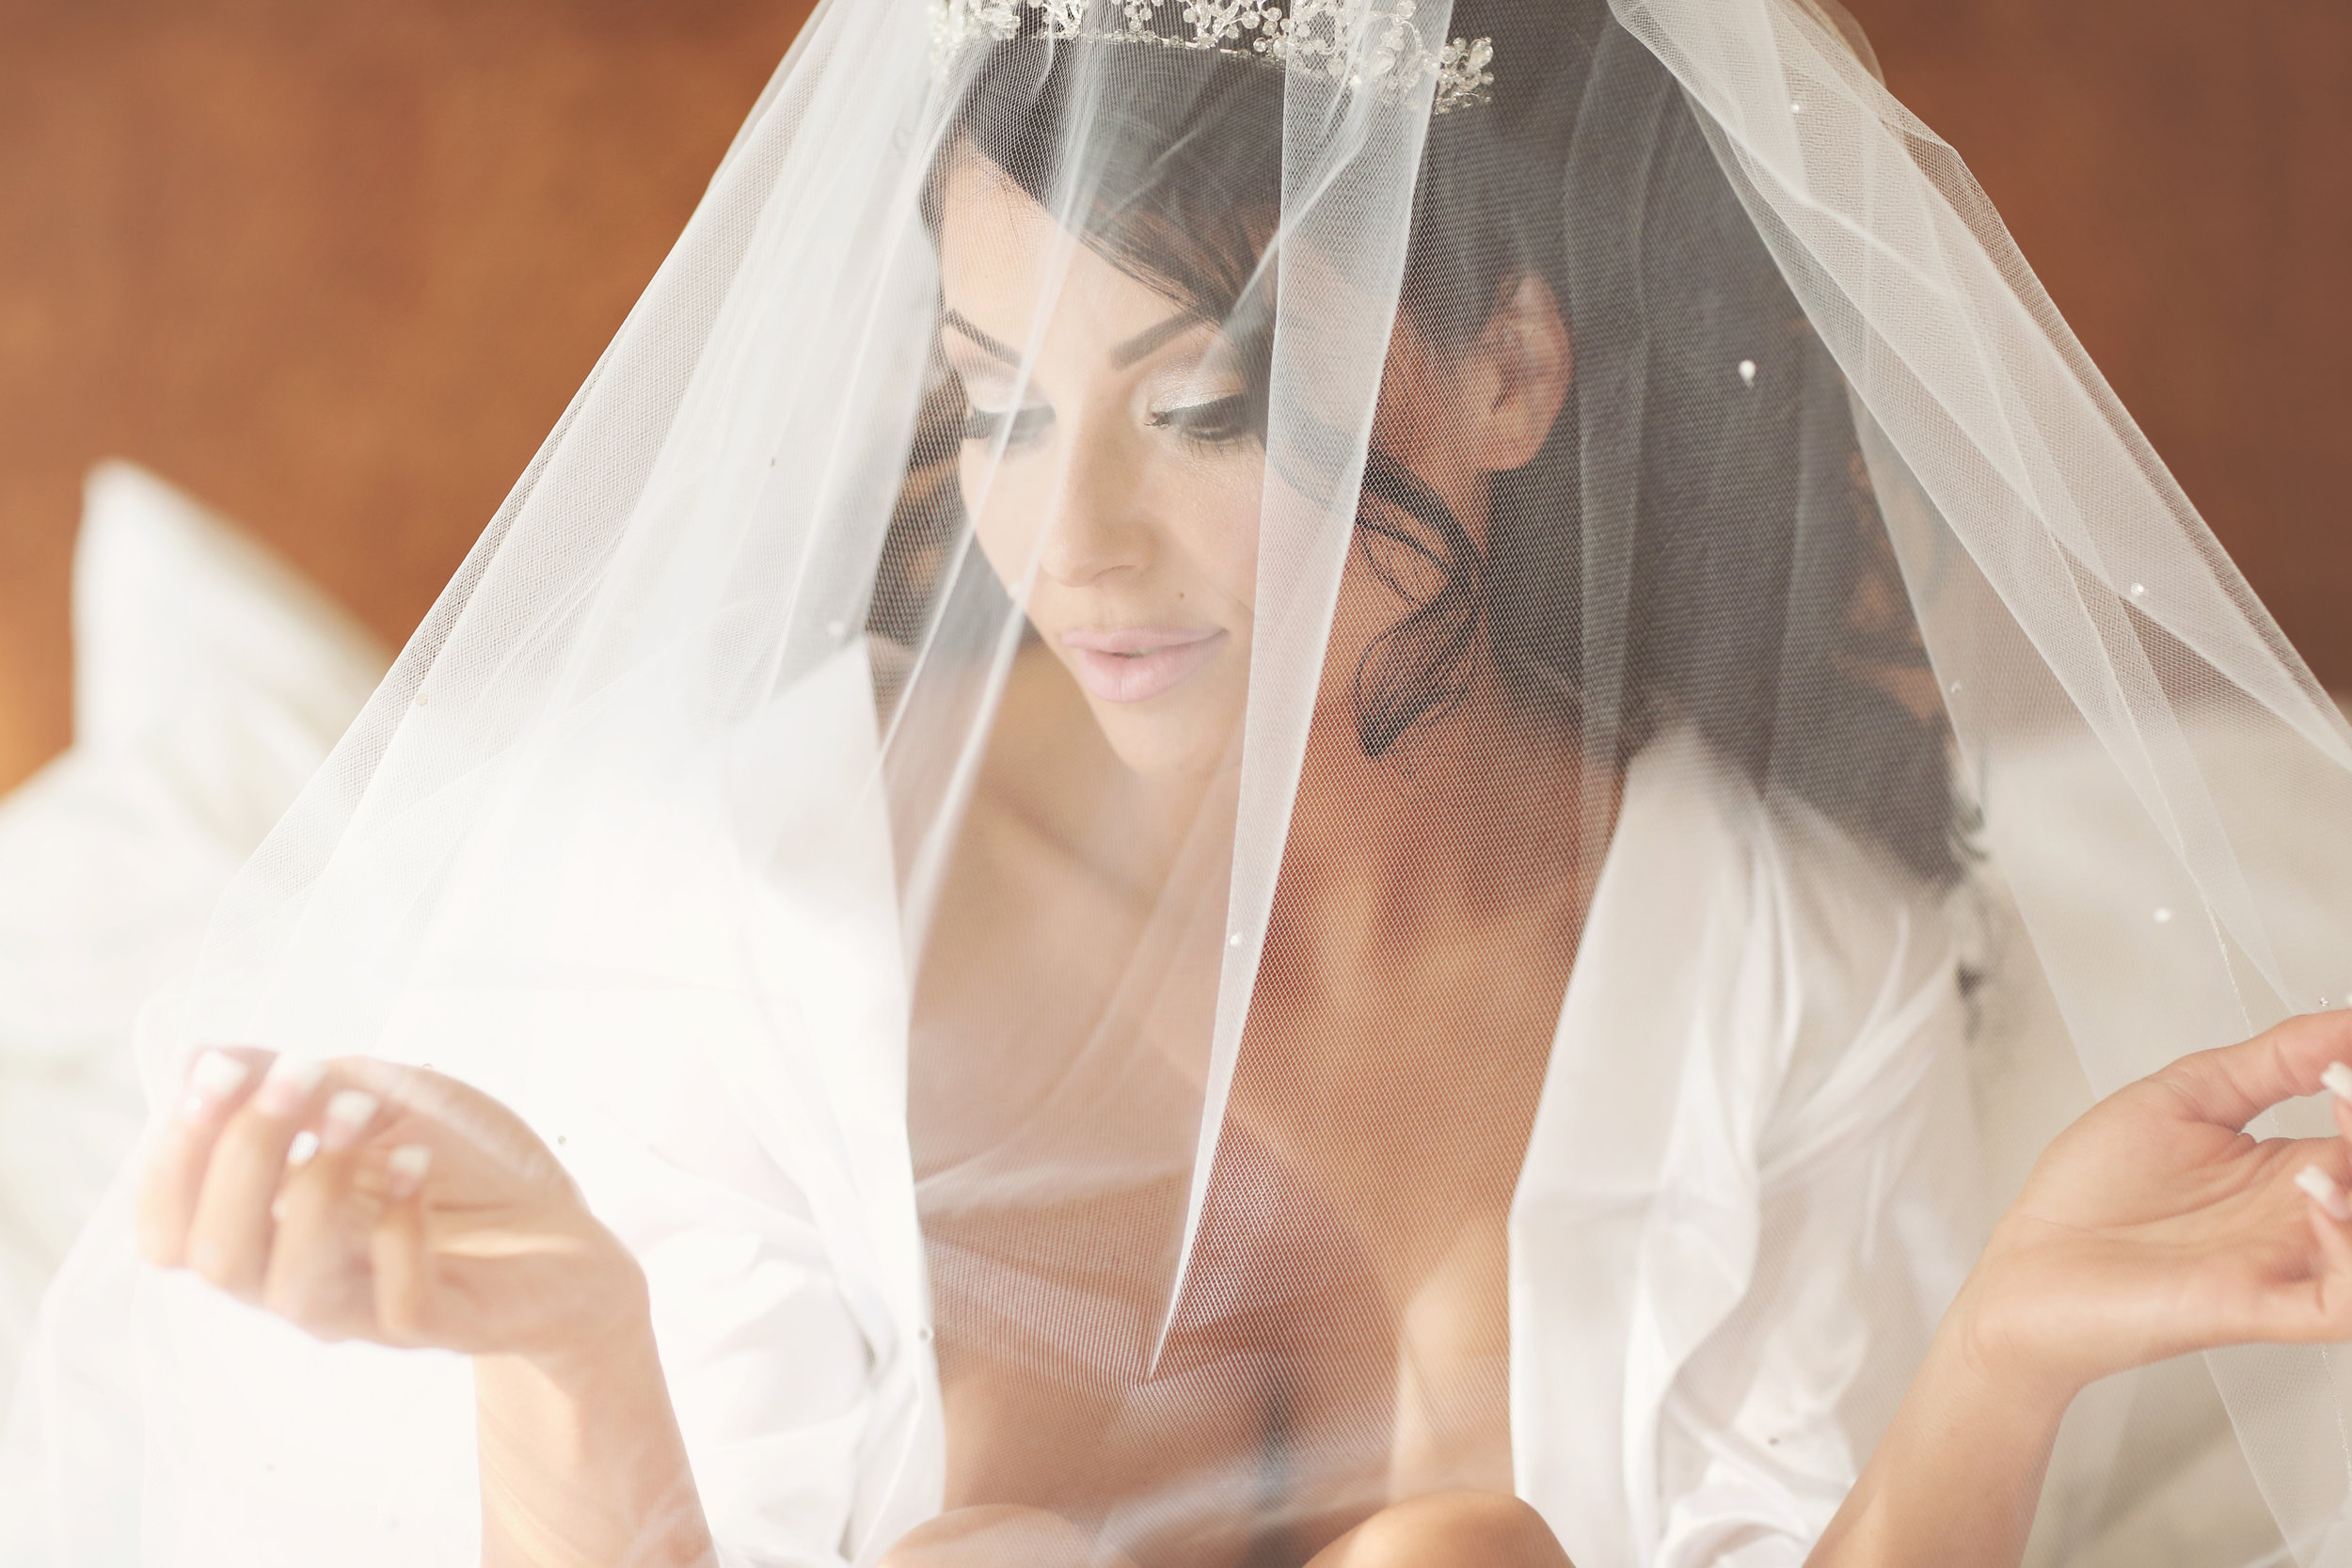 bride wearing a veil and crown doing a boudoir photo shoot